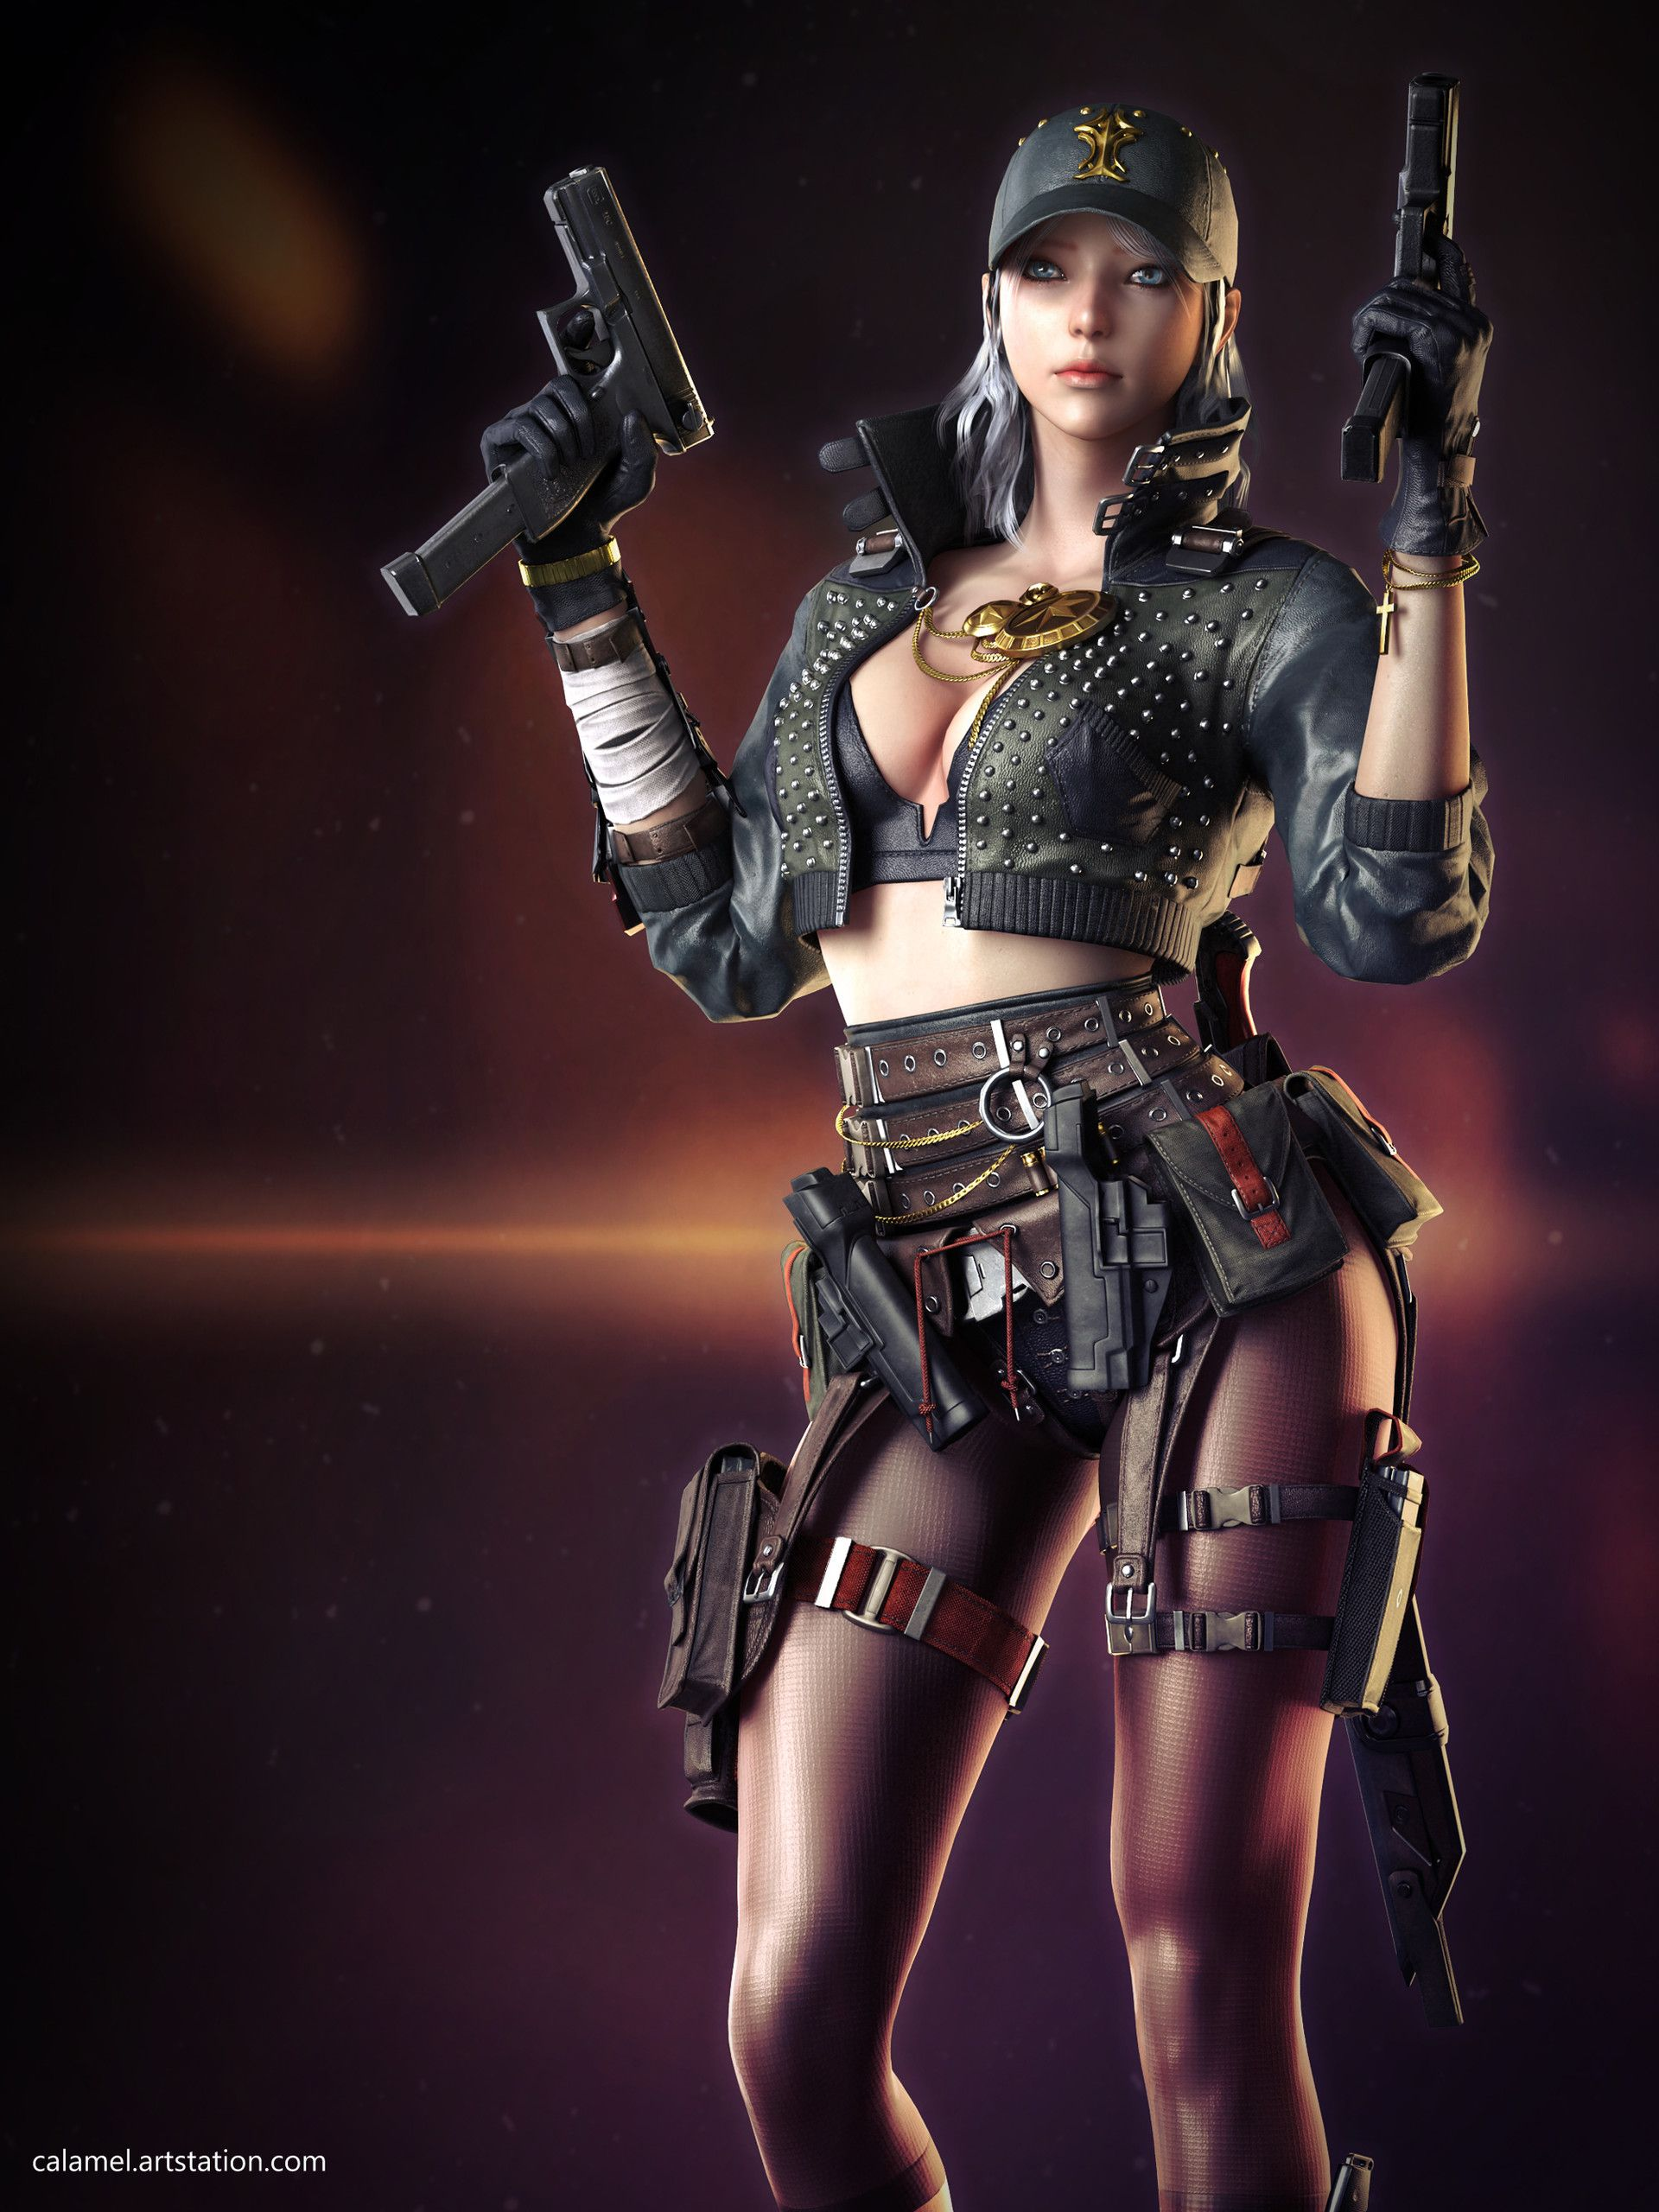 Artstation crossfire_vvip_sp kim sw with images